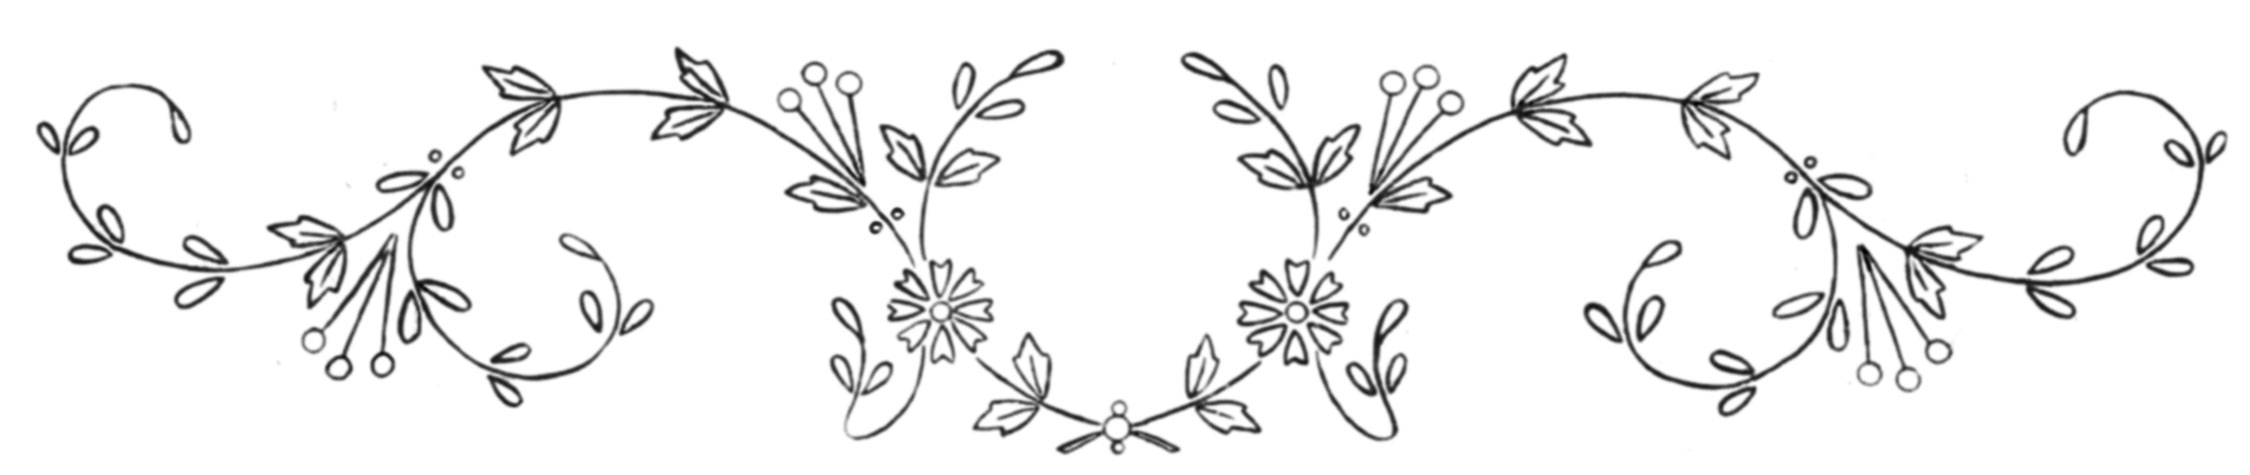 Embroidery Patterns Free Interesting Decorating Ideas